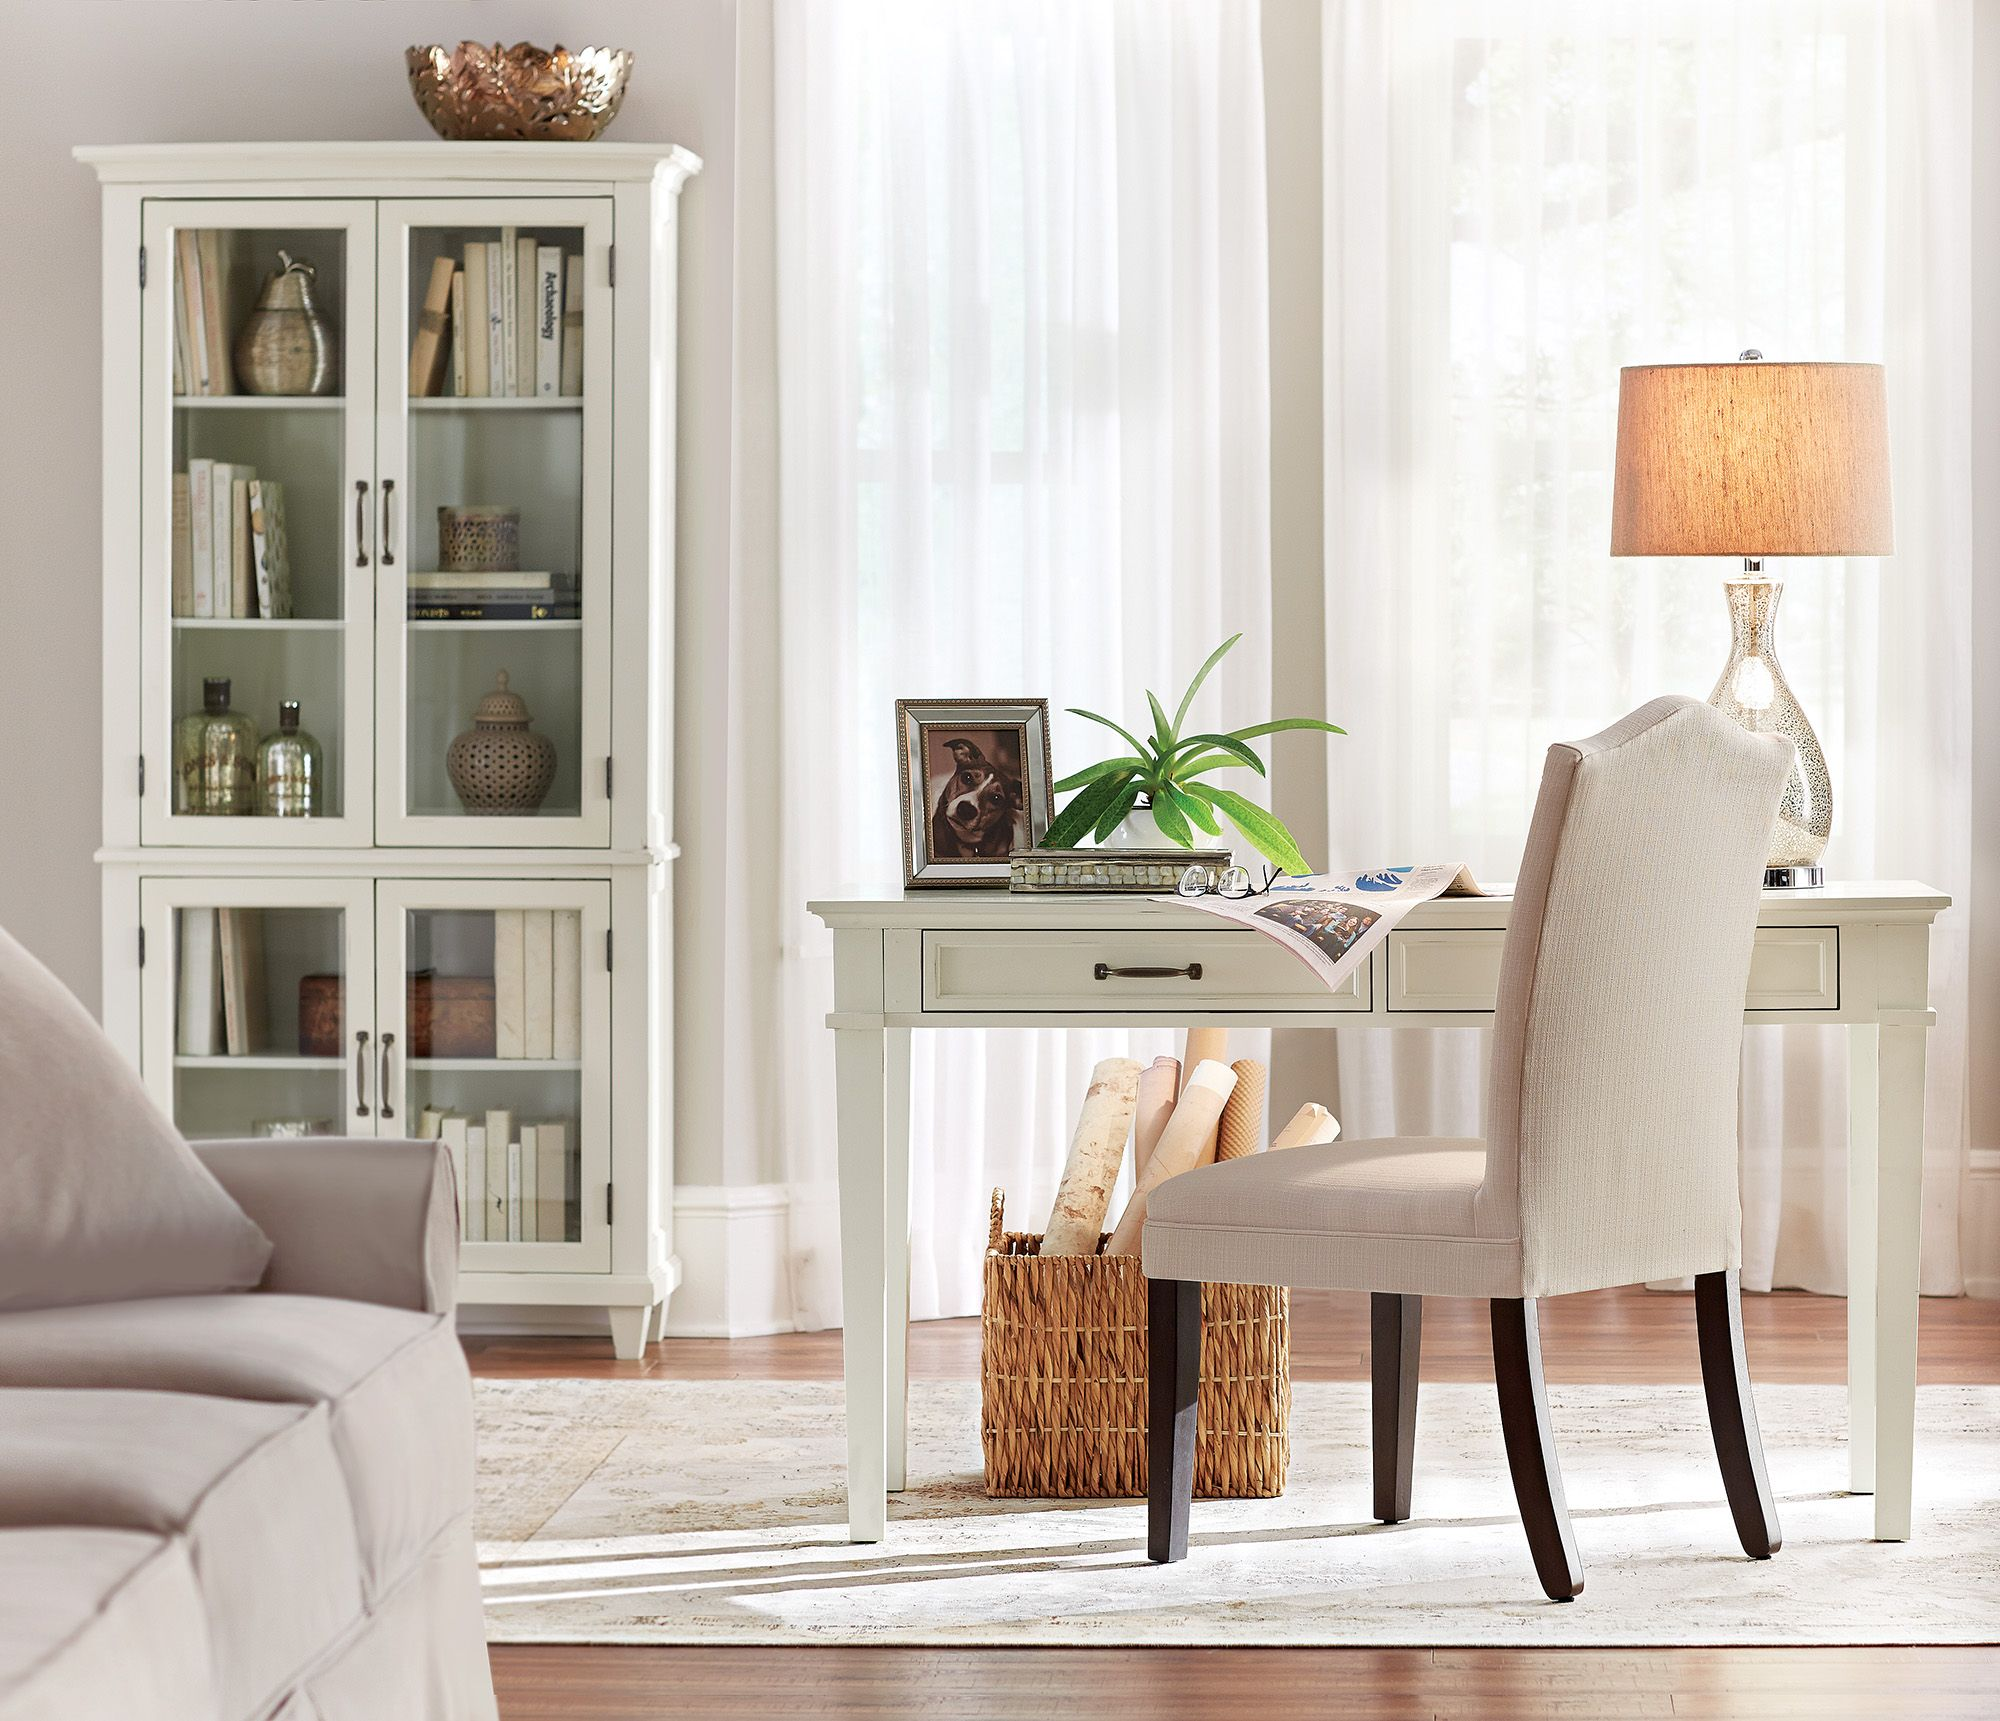 Homeoffice Furniture Design: Ivory Home Office Furniture Offers A Fresh Take On Working